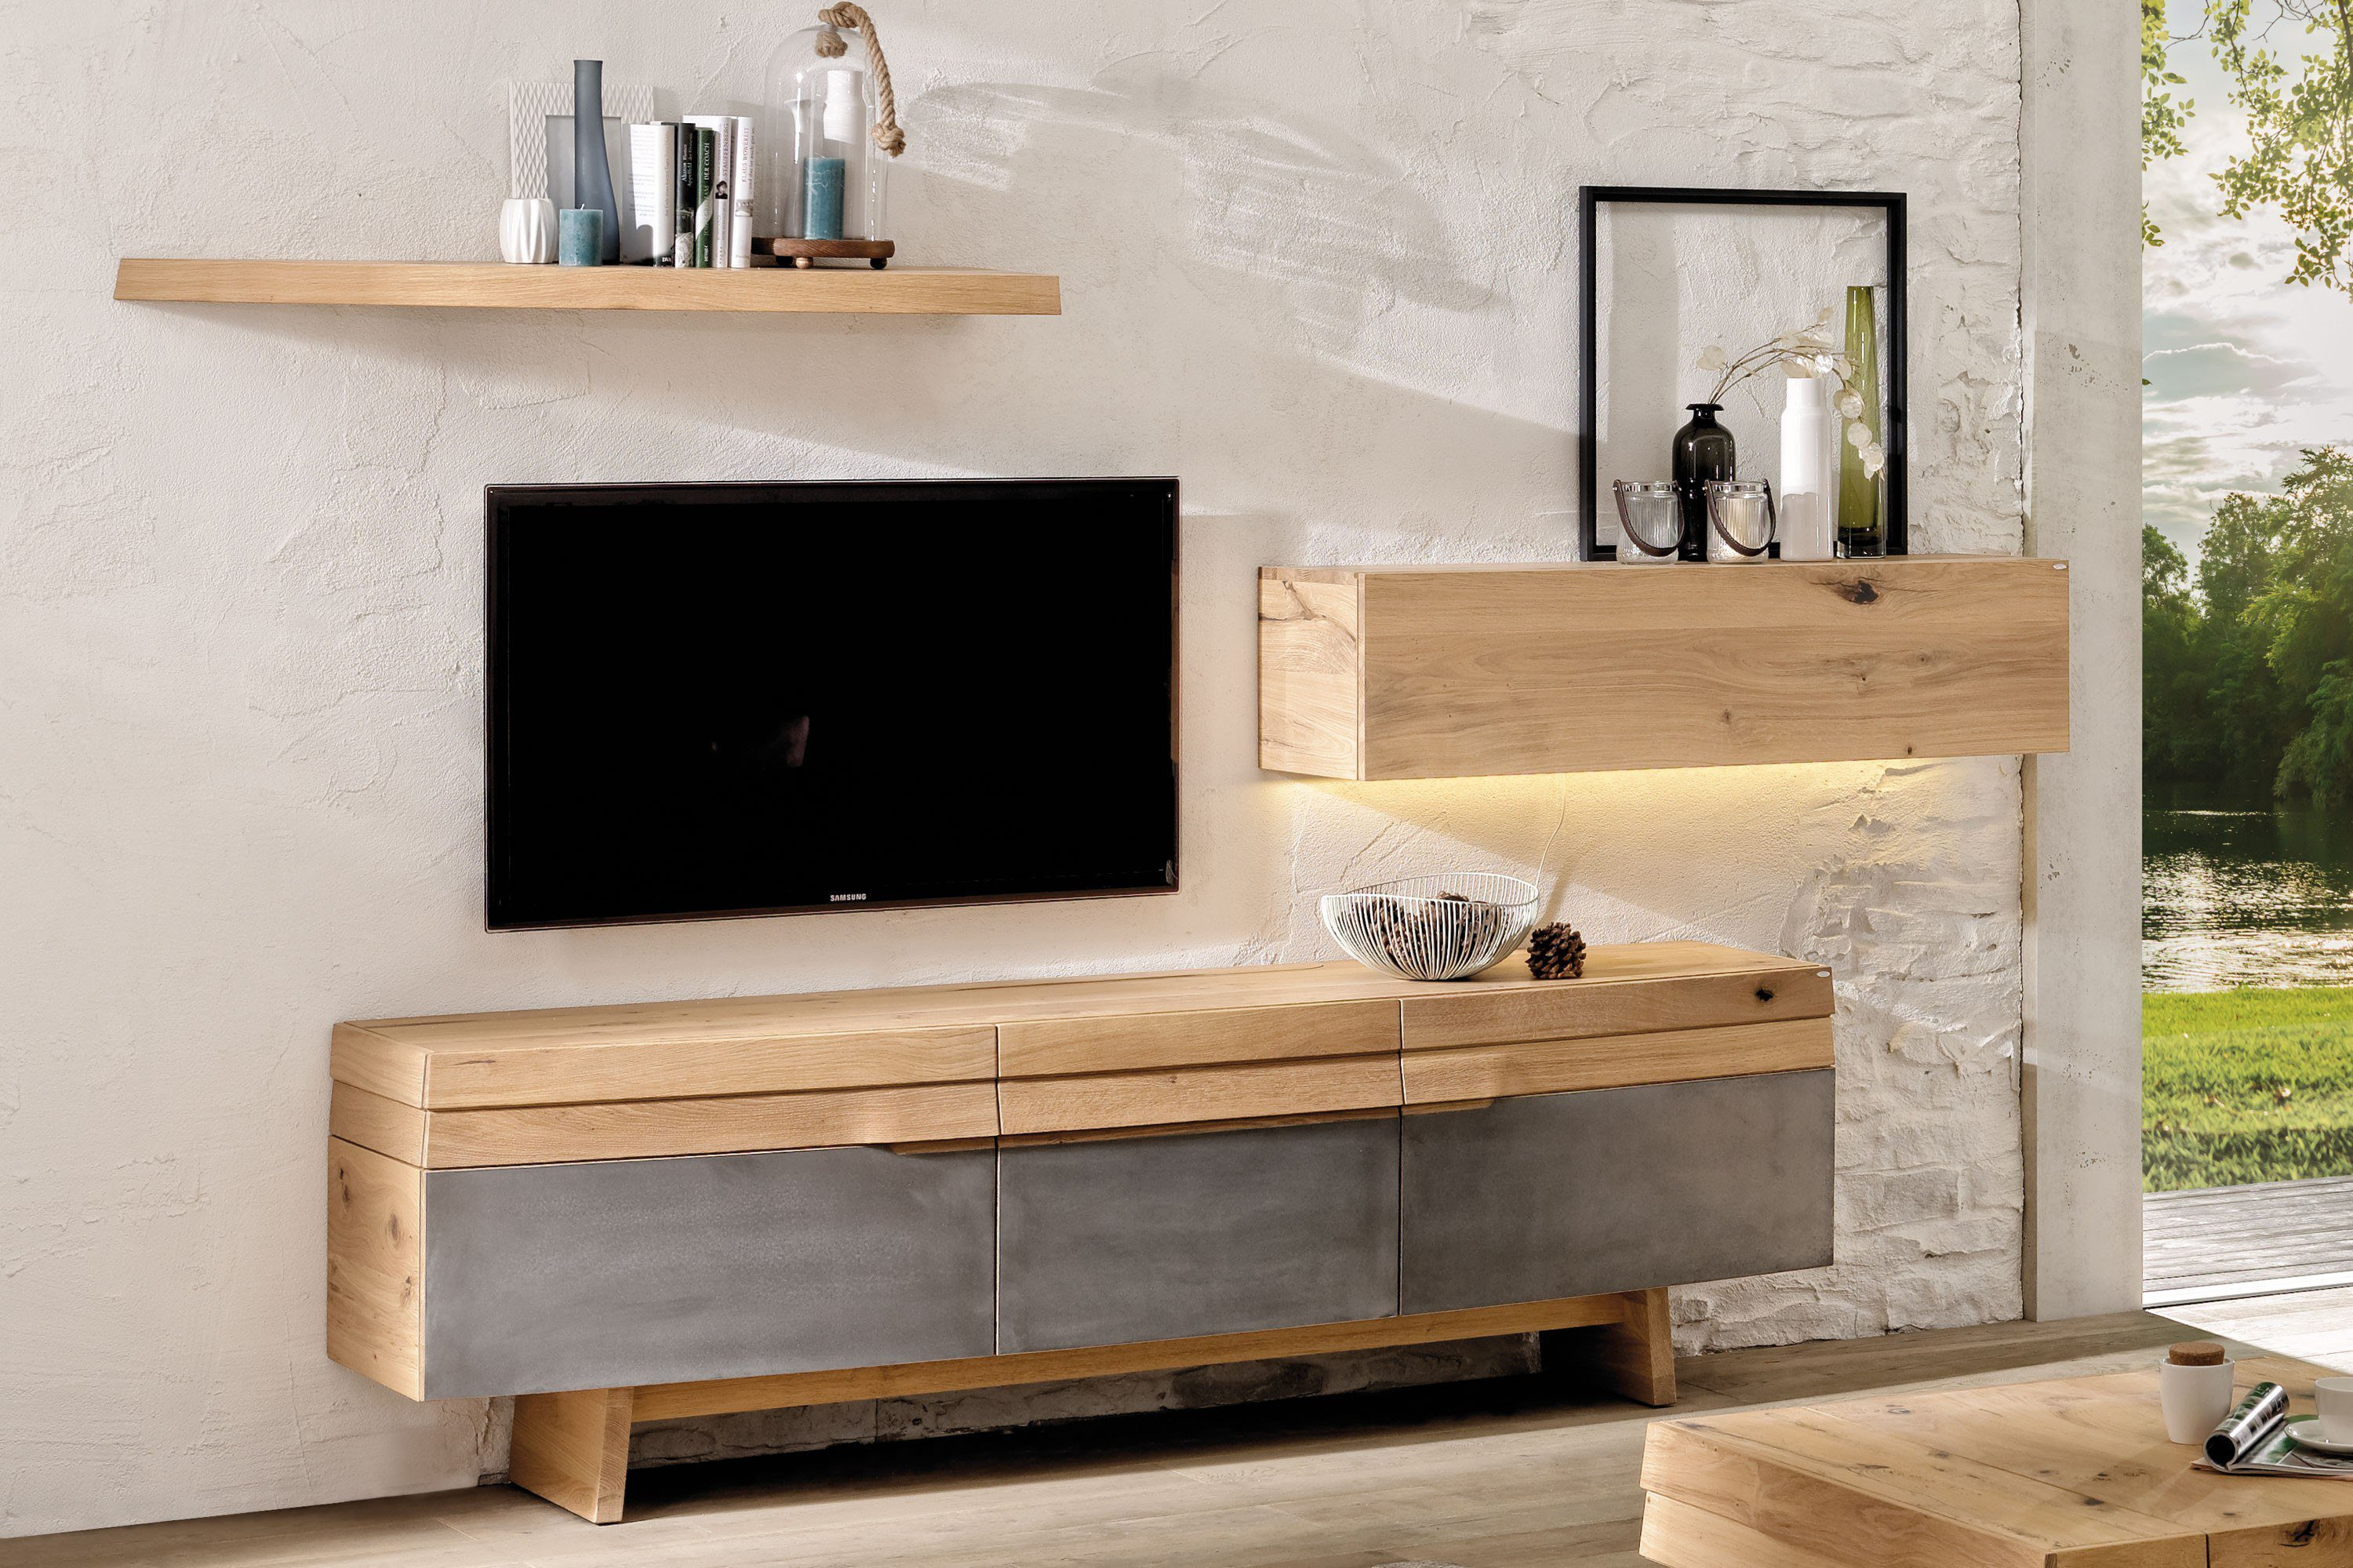 voglauer wohnwand v organo living eiche eisen m bel letz ihr online shop. Black Bedroom Furniture Sets. Home Design Ideas